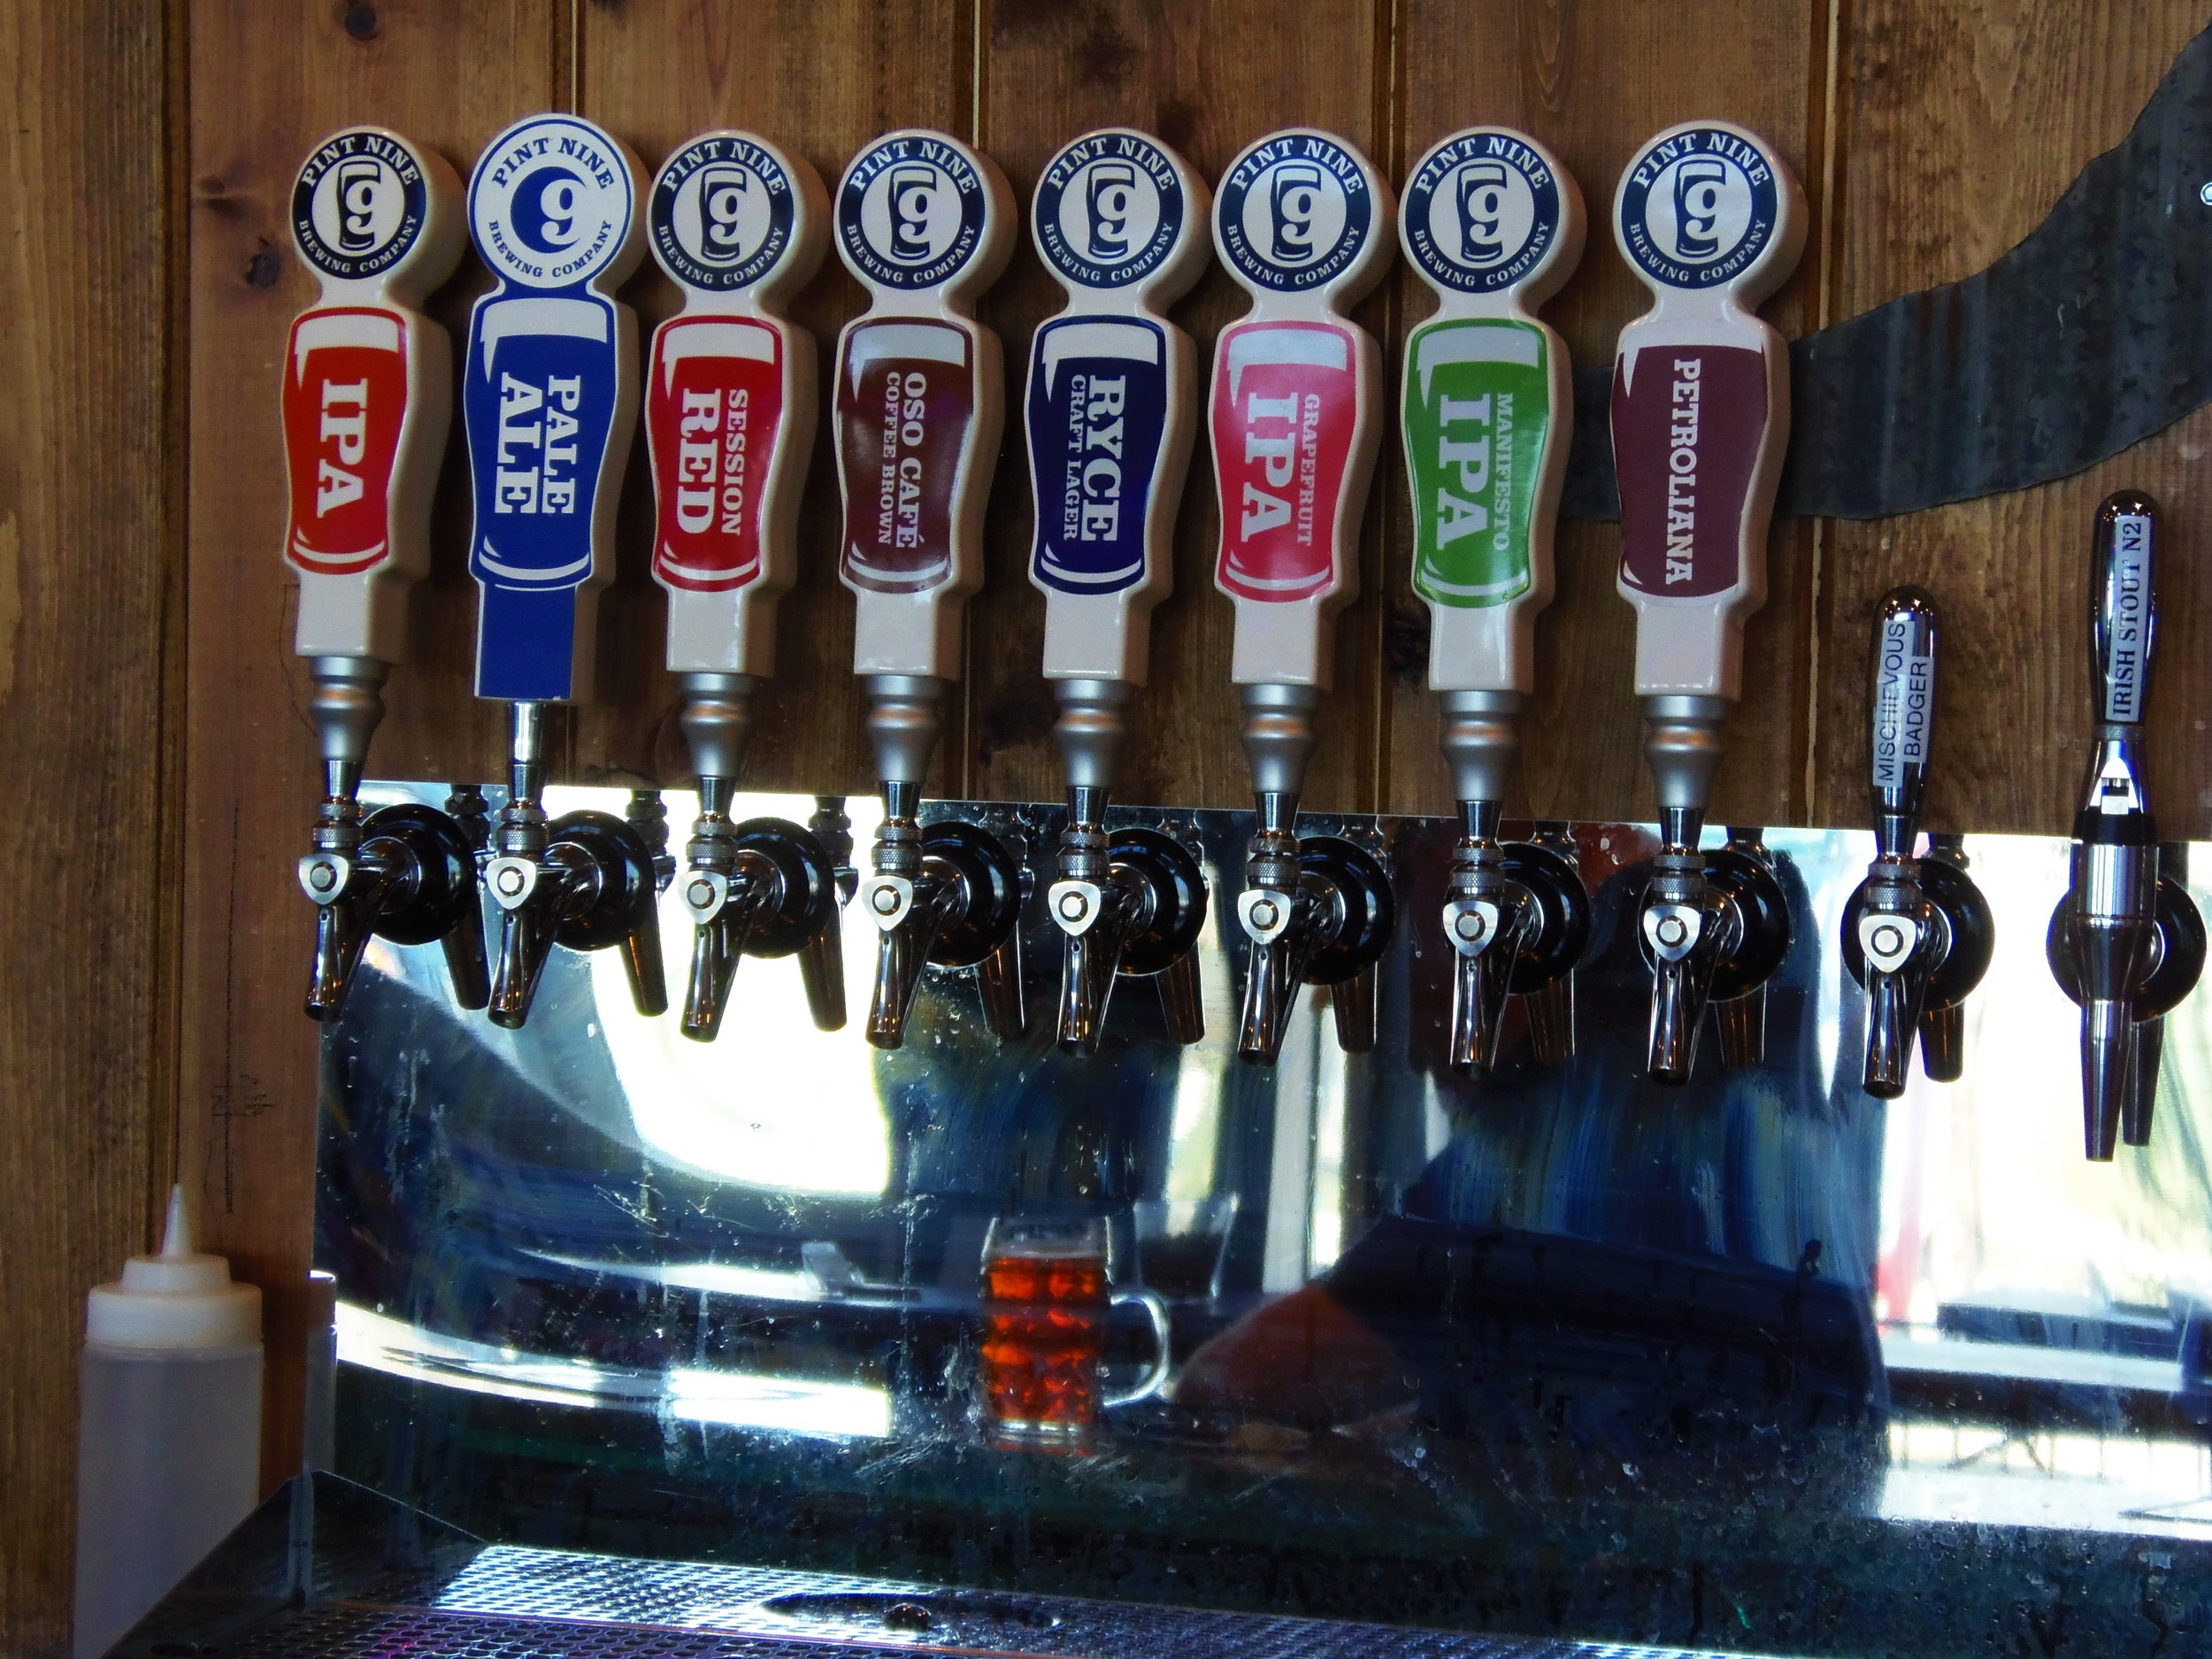 Tap handles continue to grow along with the variety of beer over the 2 years